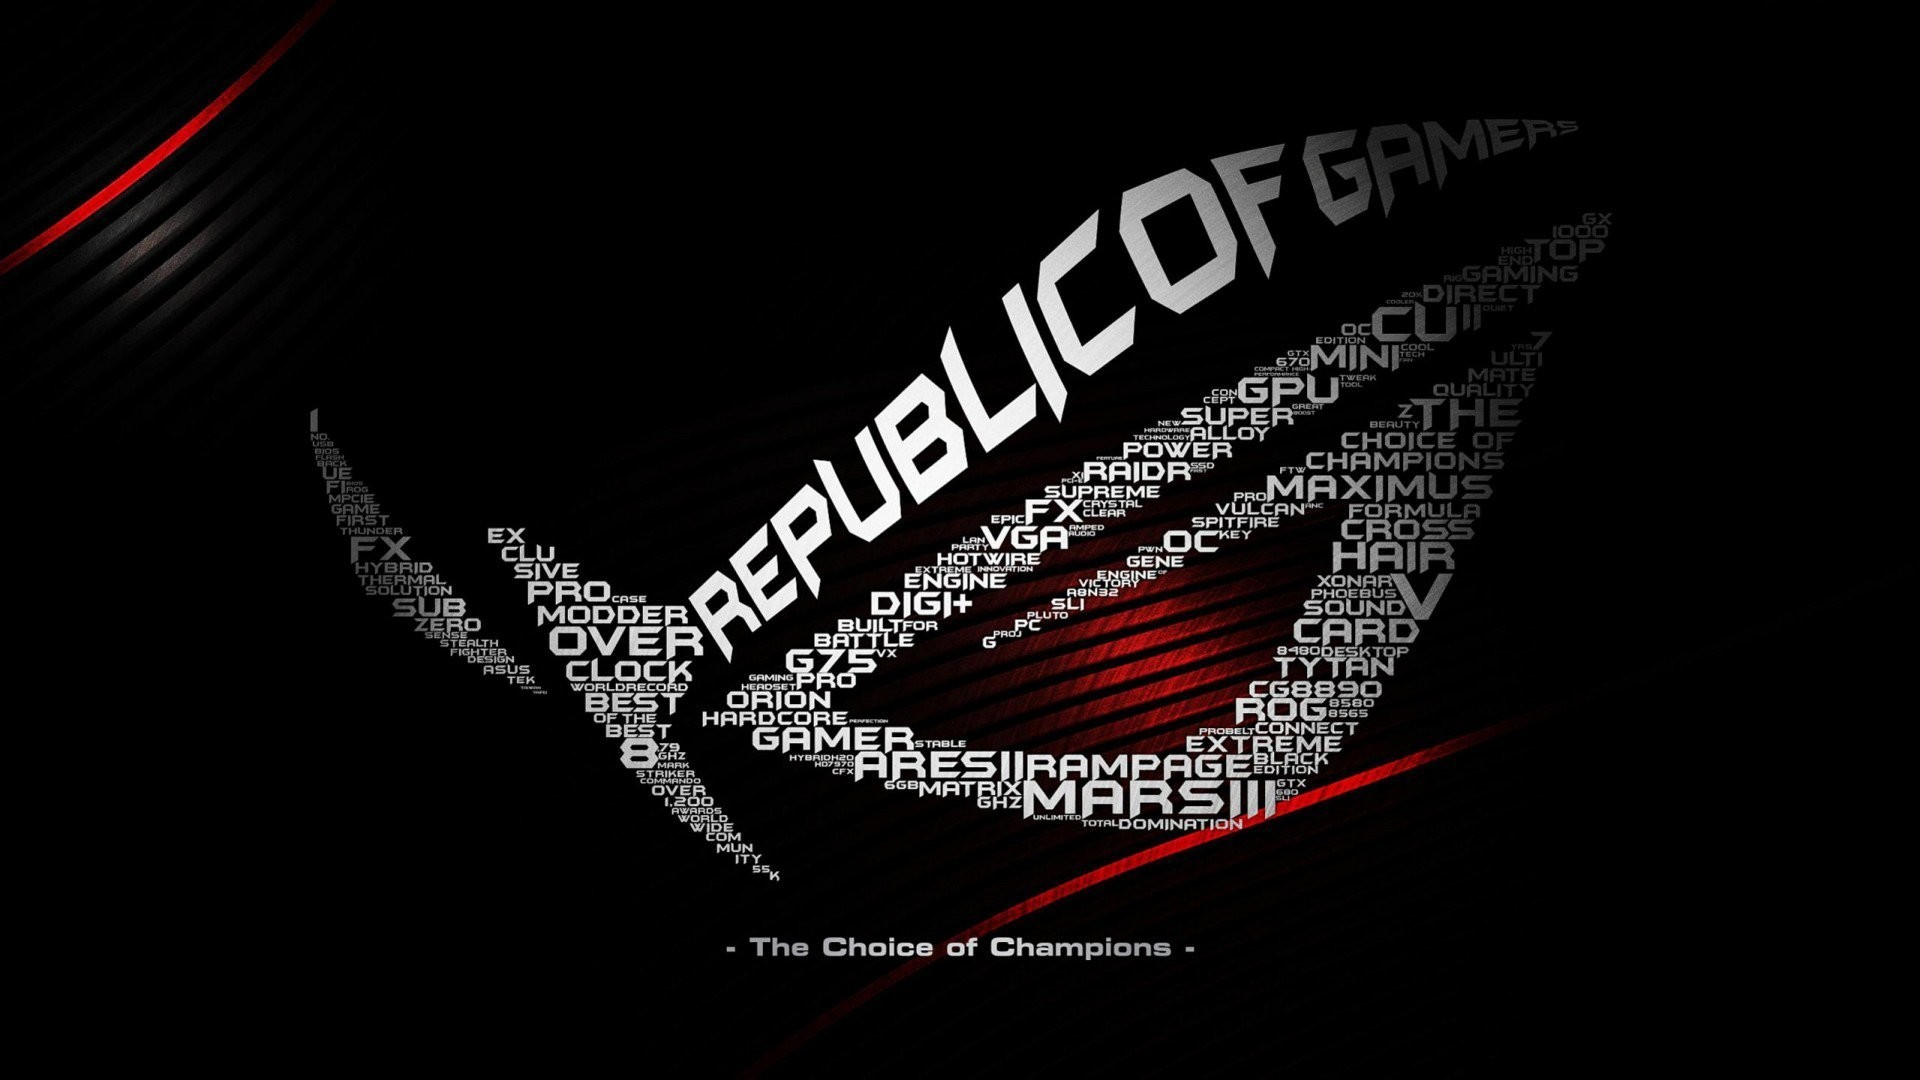 Asus Republic Of Gamers Wallpaper 84 Pictures